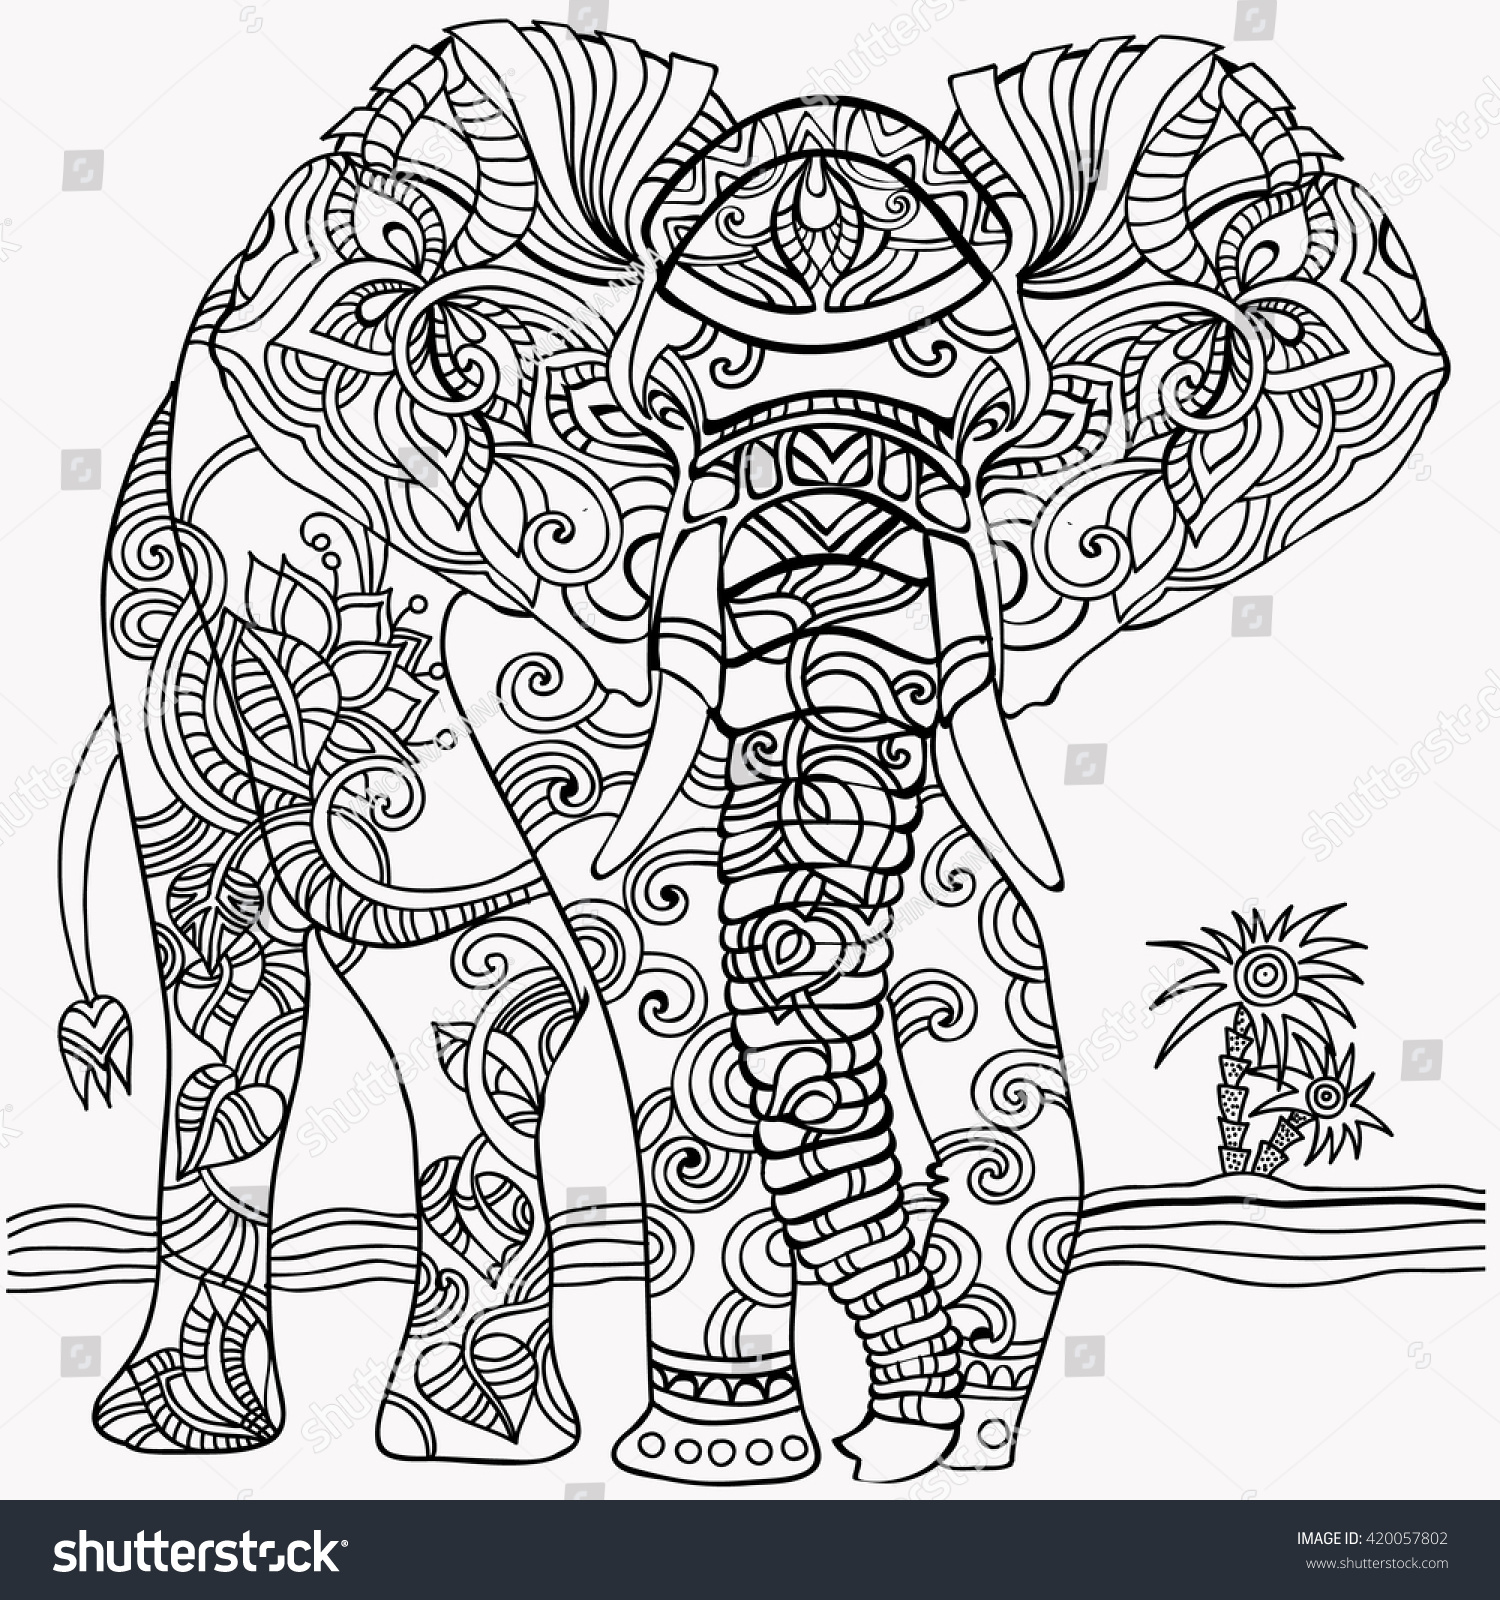 Coloring pictures elephant - Coloring Pages Elephant